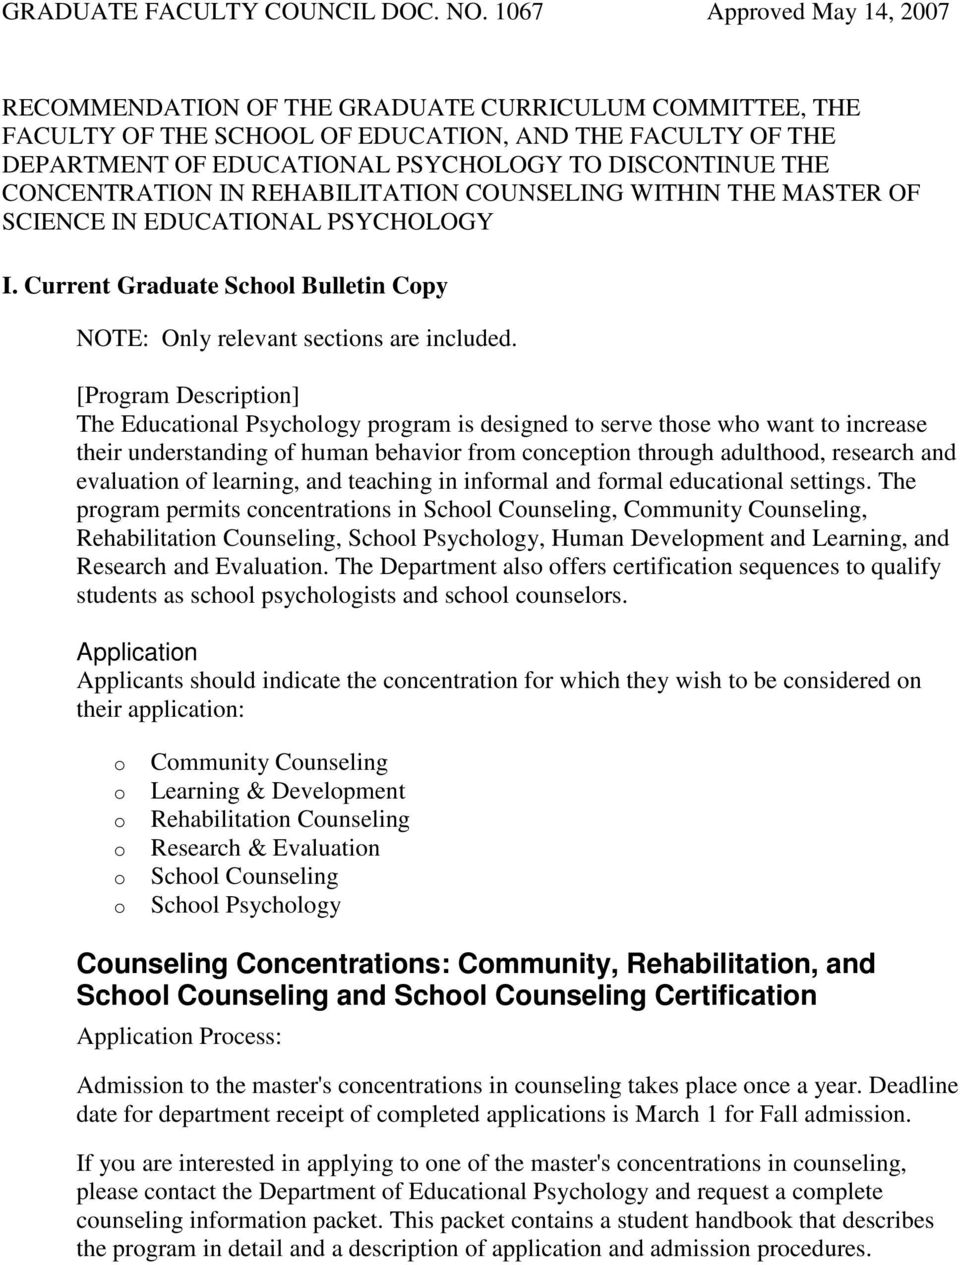 CONCENTRATION IN REHABILITATION COUNSELING WITHIN THE MASTER OF SCIENCE IN EDUCATIONAL PSYCHOLOGY I. Current Graduate Schl Bulletin Cpy NOTE: Only relevant sectins are included.